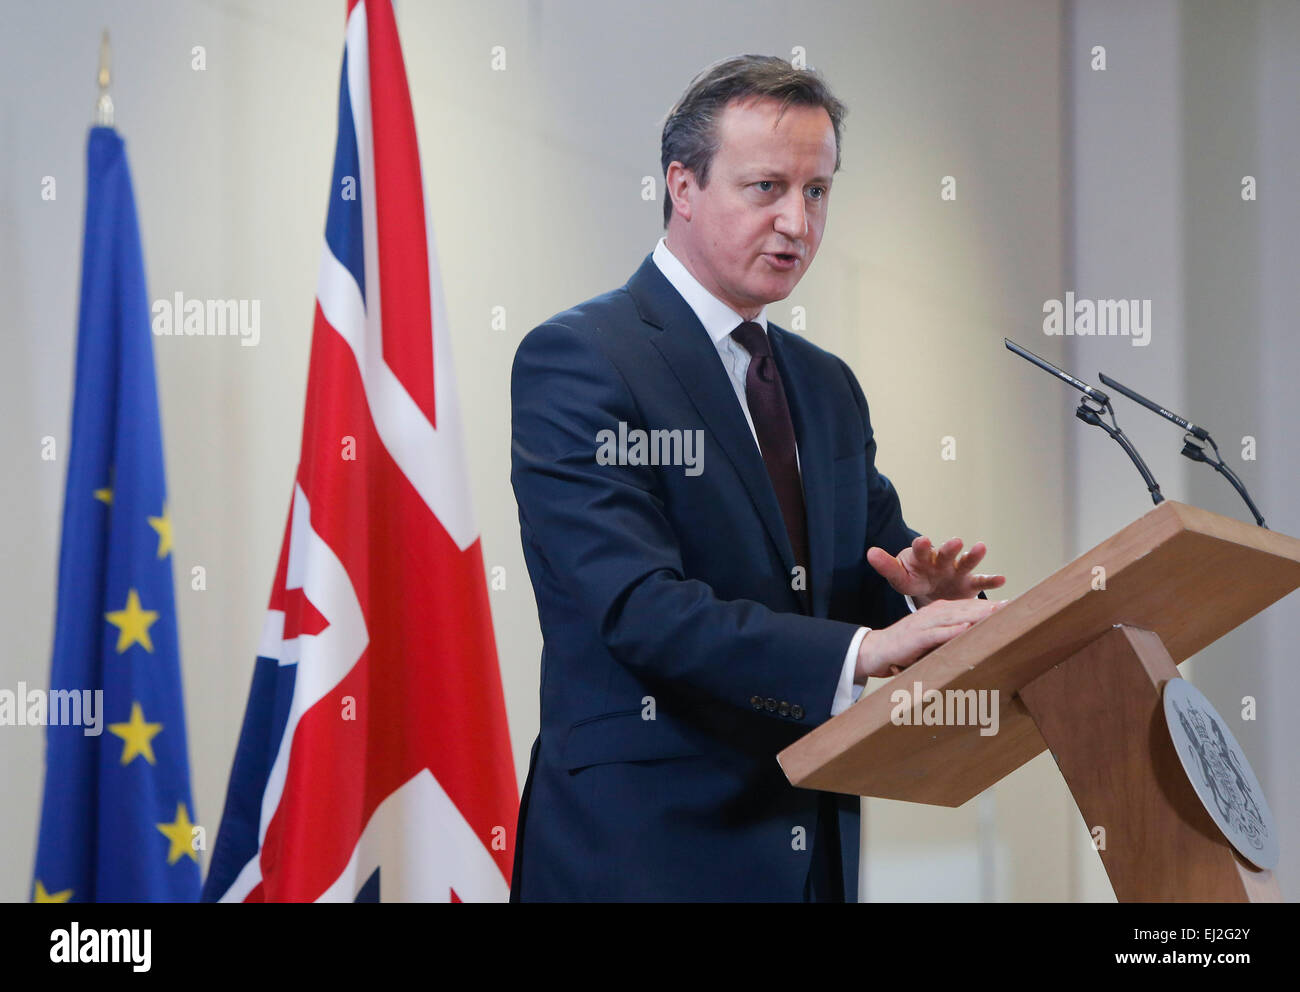 Brussels, Belgium. 20th Mar, 2015. British Prime Minister David Cameron speaks during a press conference after the Stock Photo